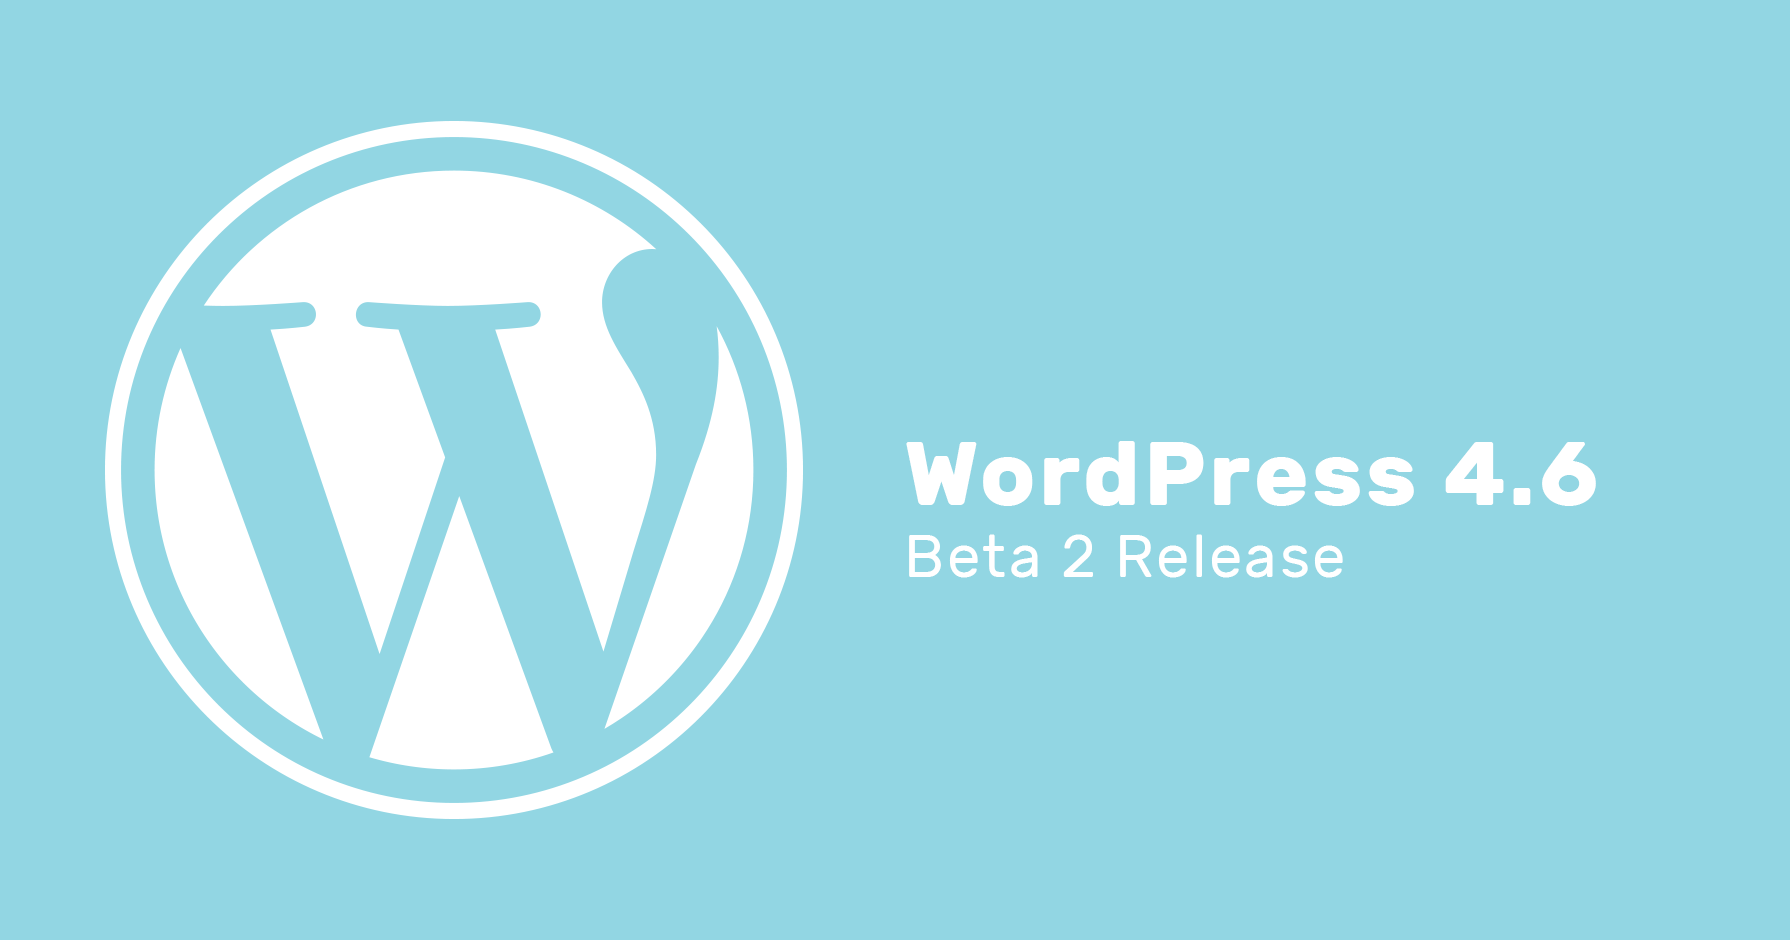 WordPress 4.6 Beta 2 release is available!